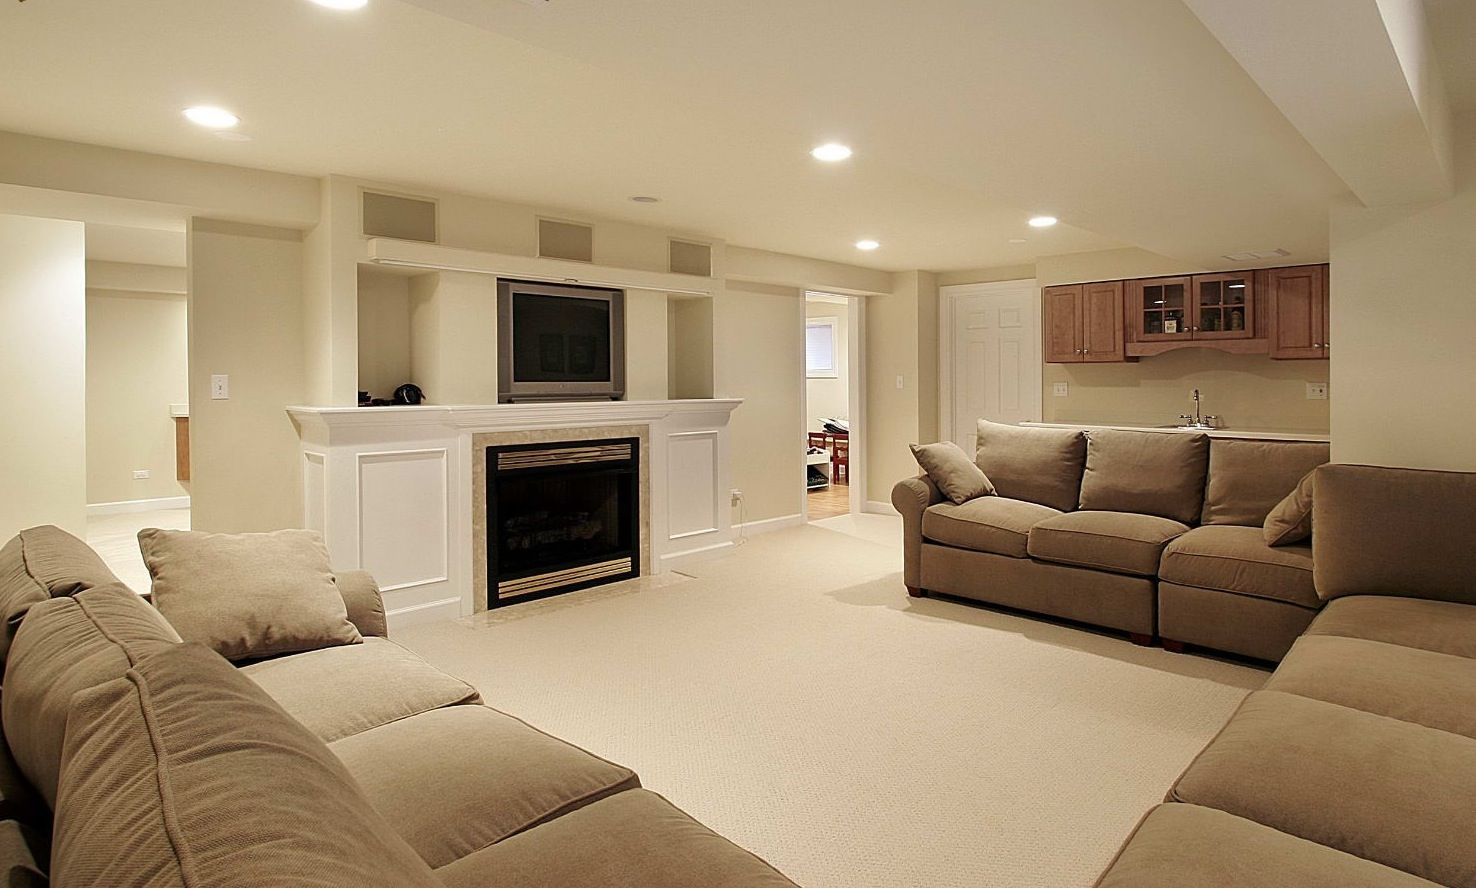 basement interior design - 1000+ images about Basement on Pinterest Basement finishing ...